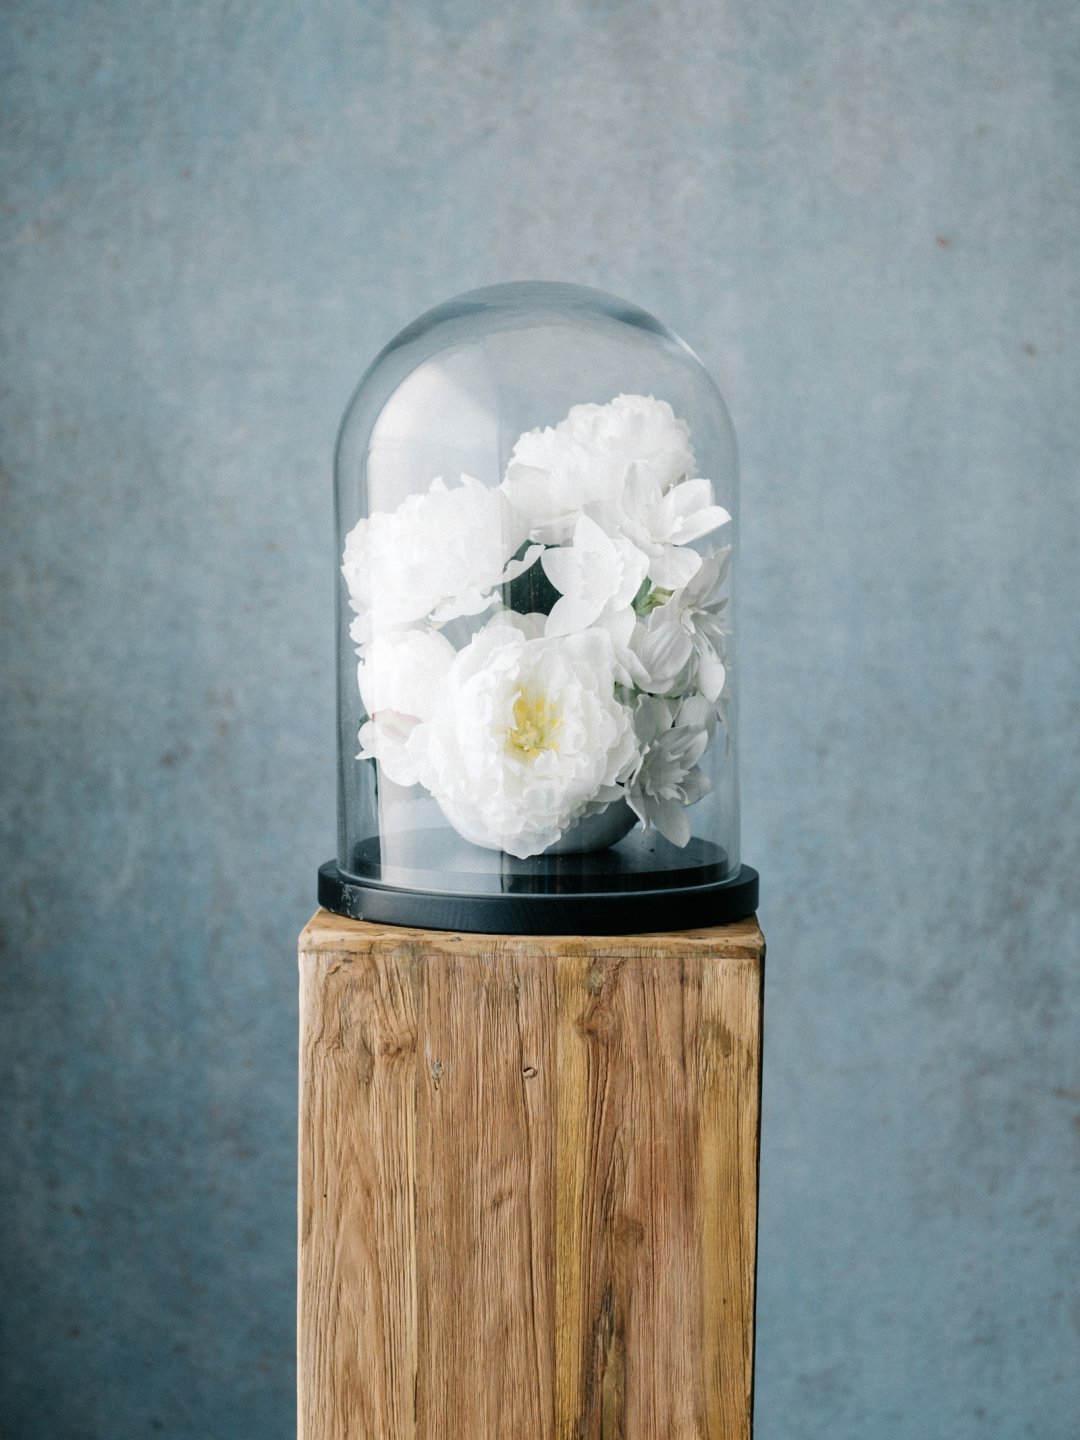 white flowers are displayed in a glass container on a wood shelf